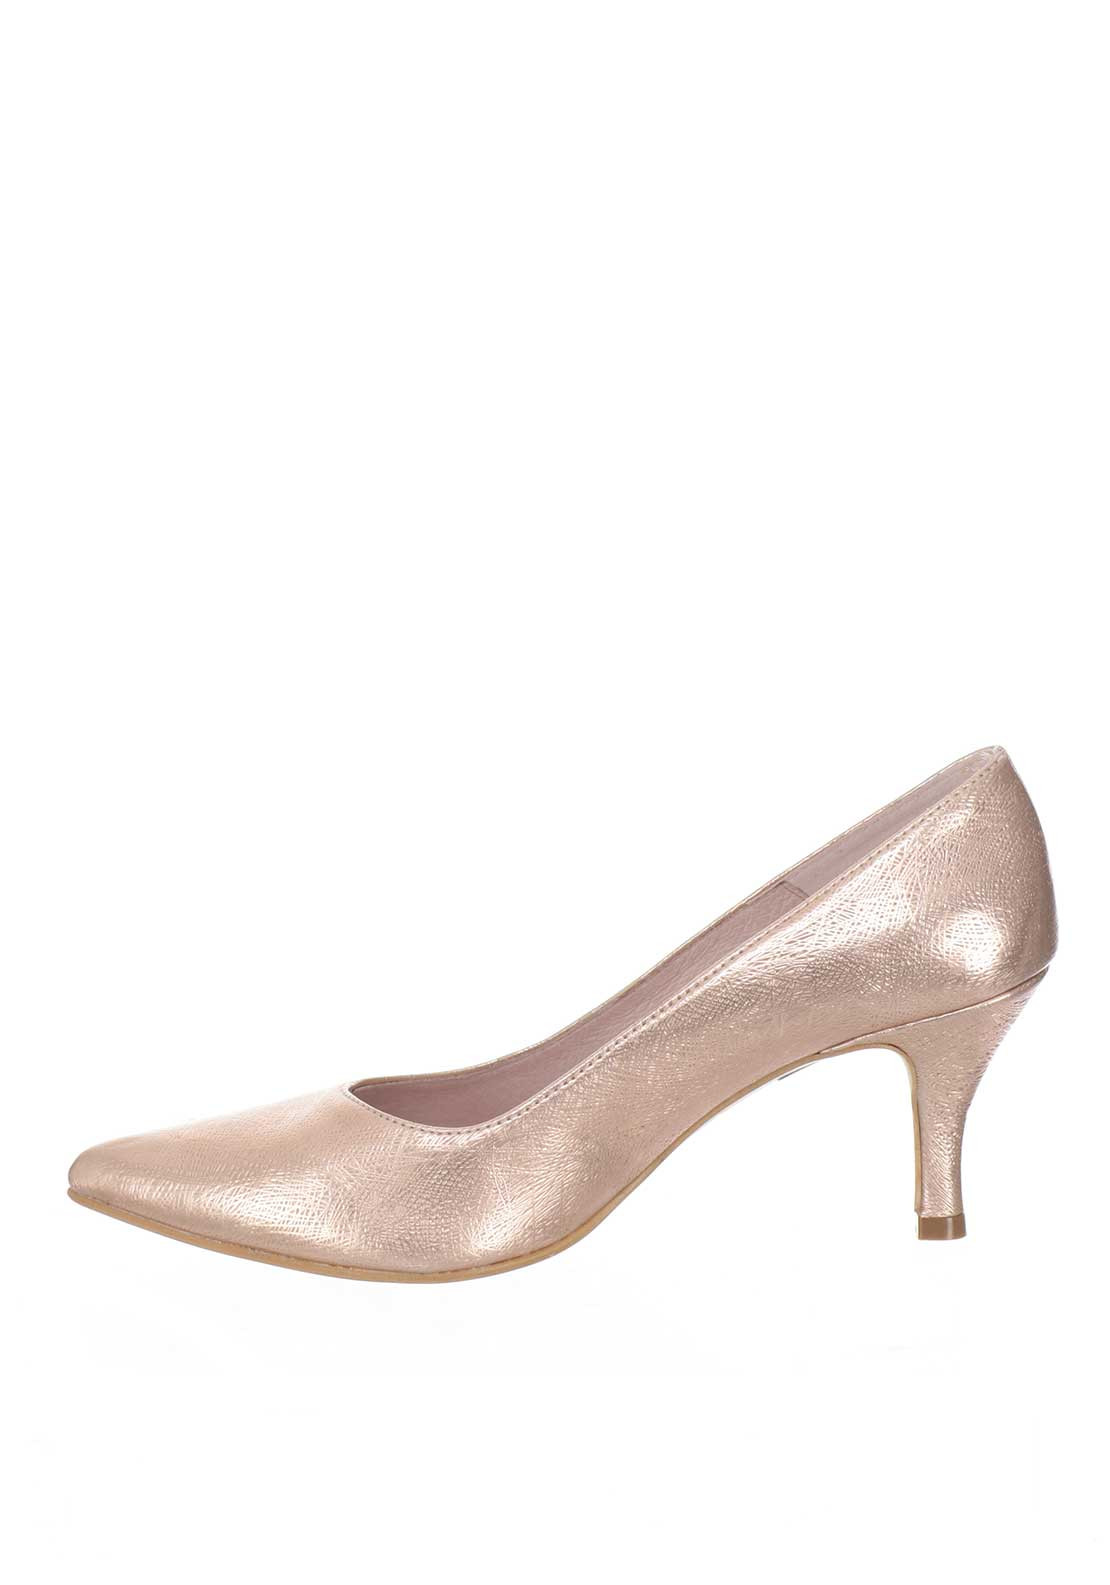 Ana Roman Textured Mid Heel Court Shoes, Rose Gold | McElhinneys ...